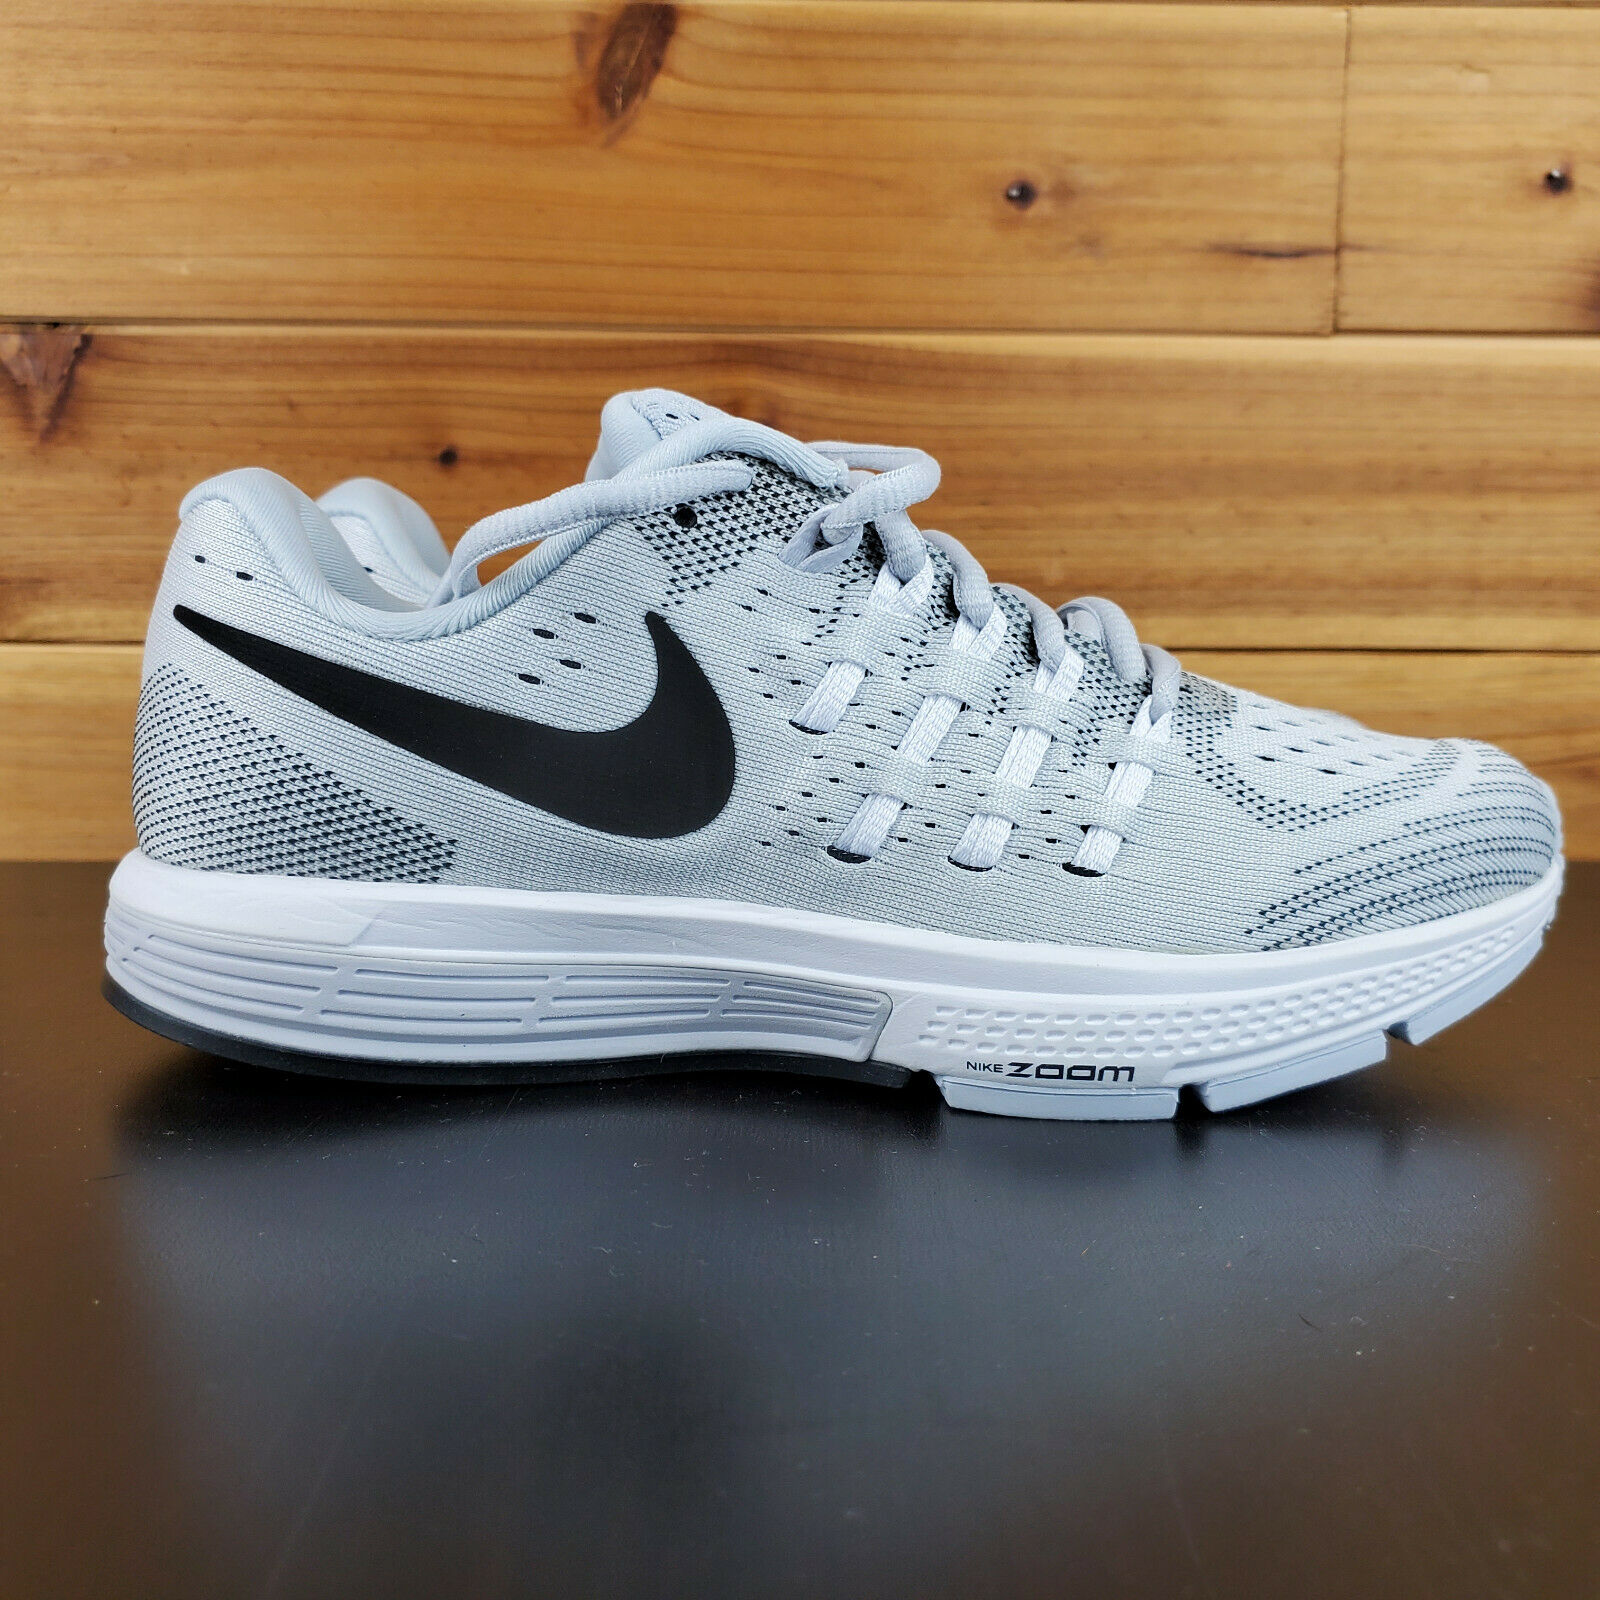 Nike Air Zoom Vomero 11 Women's 6 Running Shoes Platinum Gre